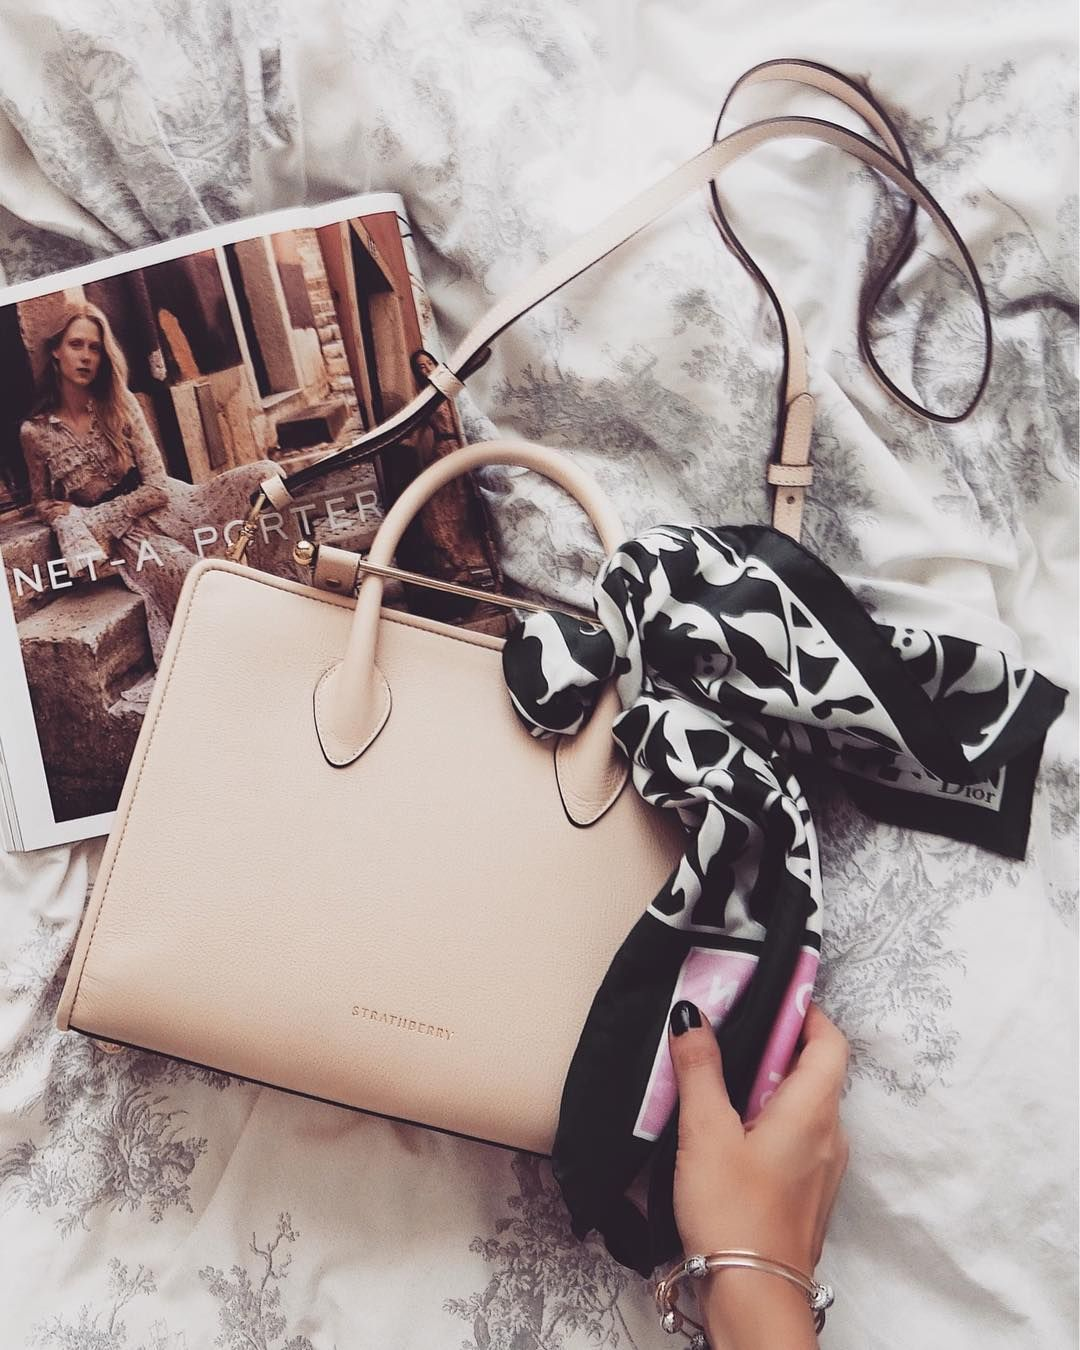 Sinead Crowe with The Strathberry Midi Tote in Nude  89c0ddcb08dc5